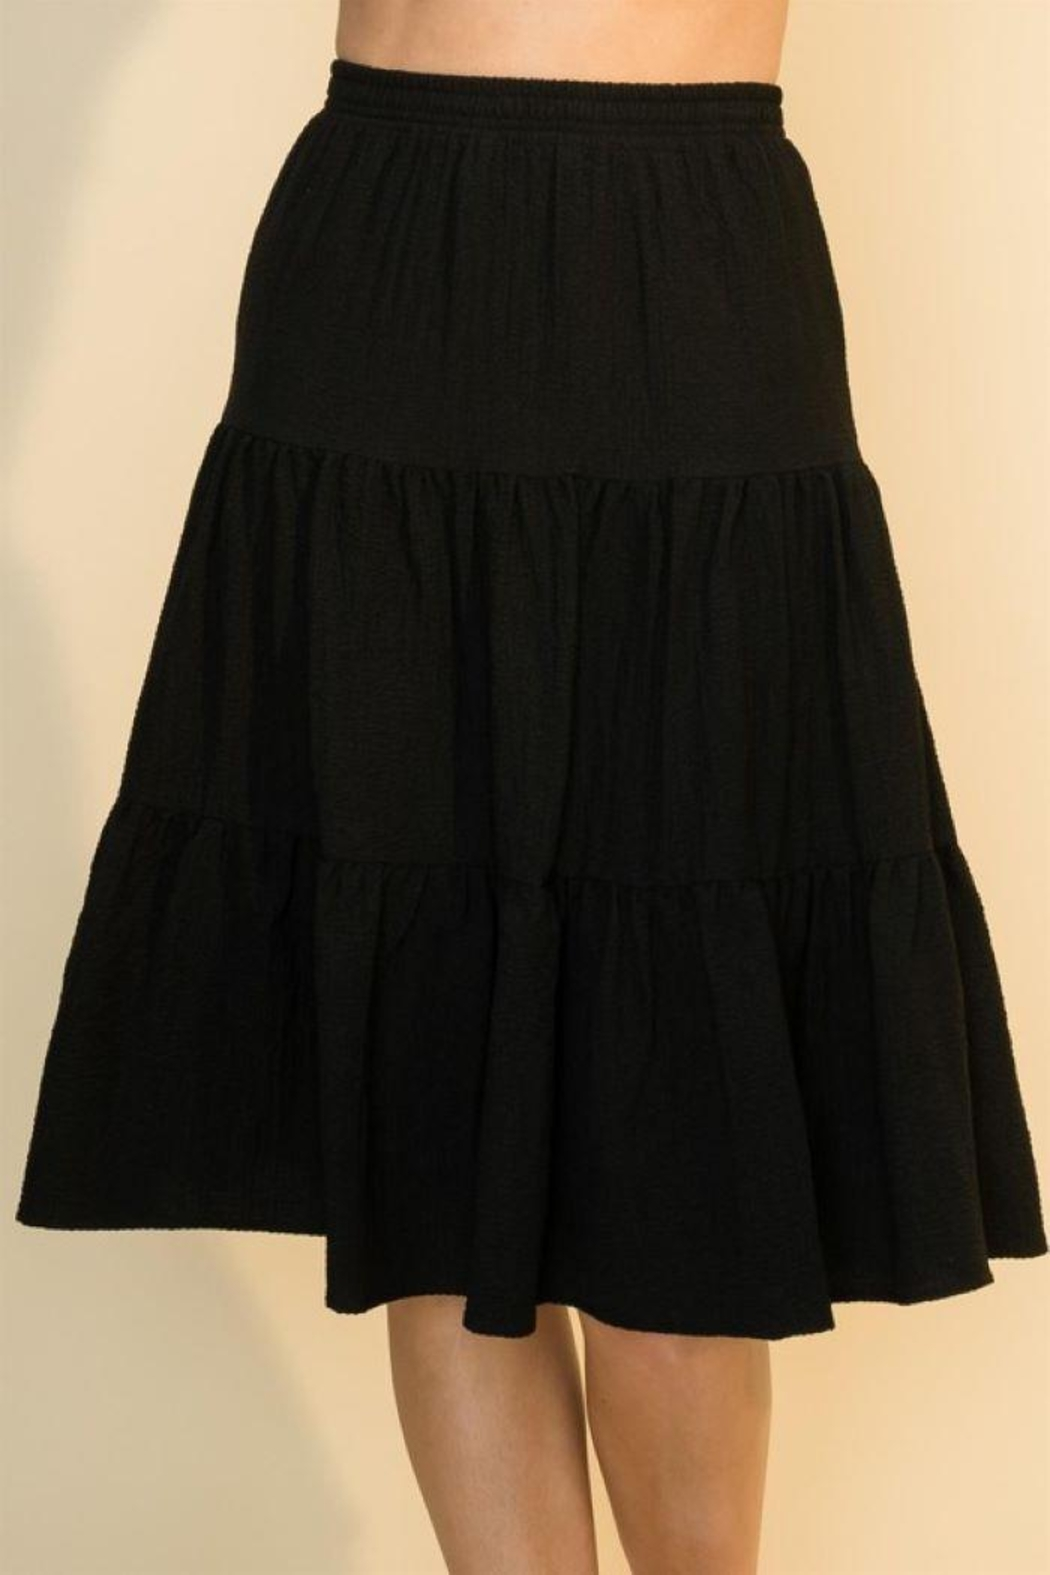 HYFVE Shirring With Ruffle Skirt - Main Image